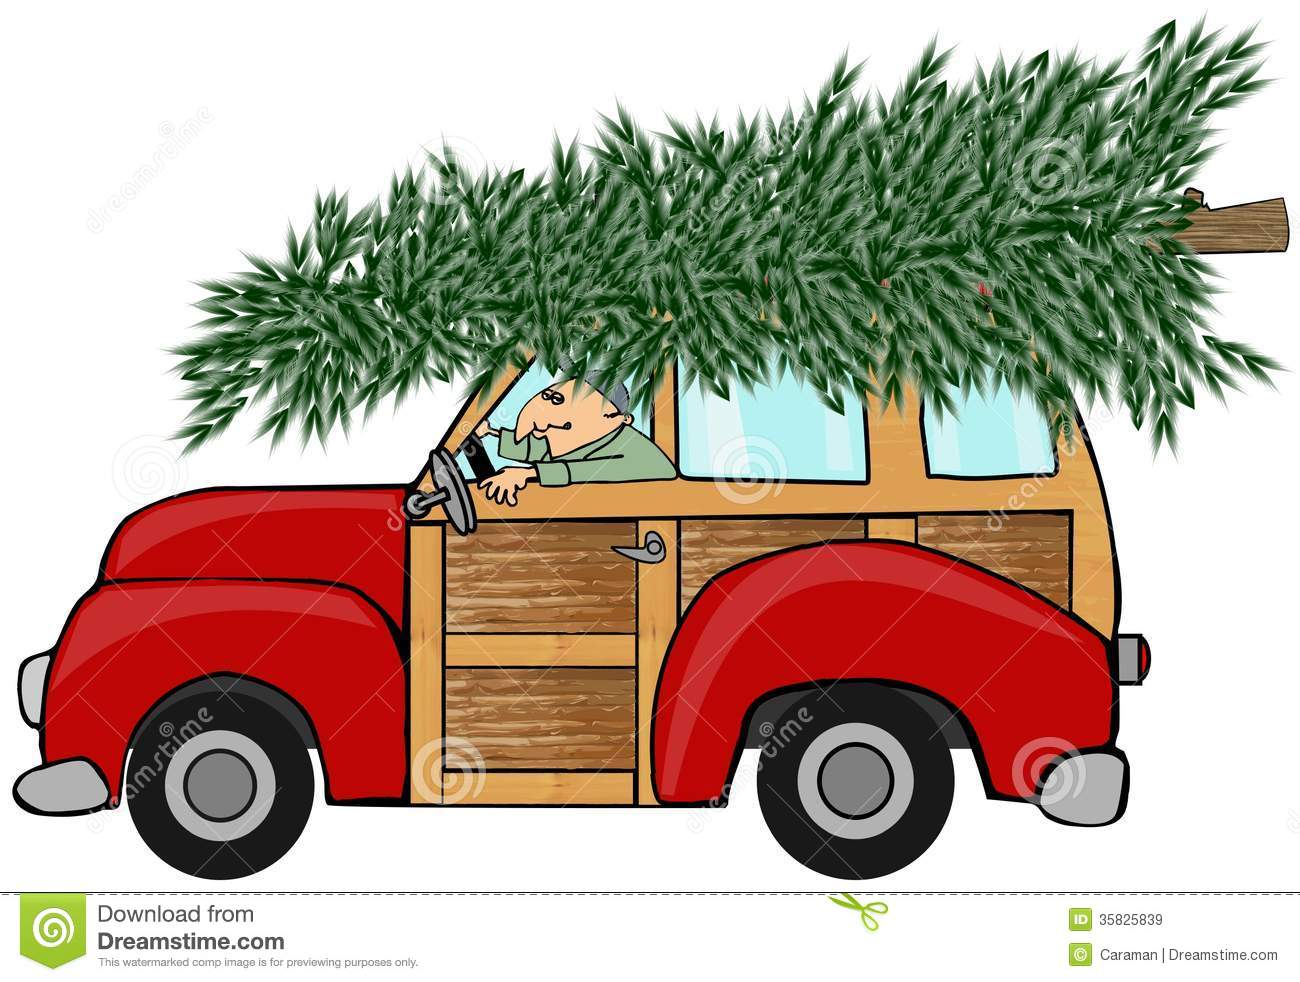 Real christmas tree on top of car clipart clip art freeuse stock Christmas Tree On Top Of Car Clipart clip art freeuse stock